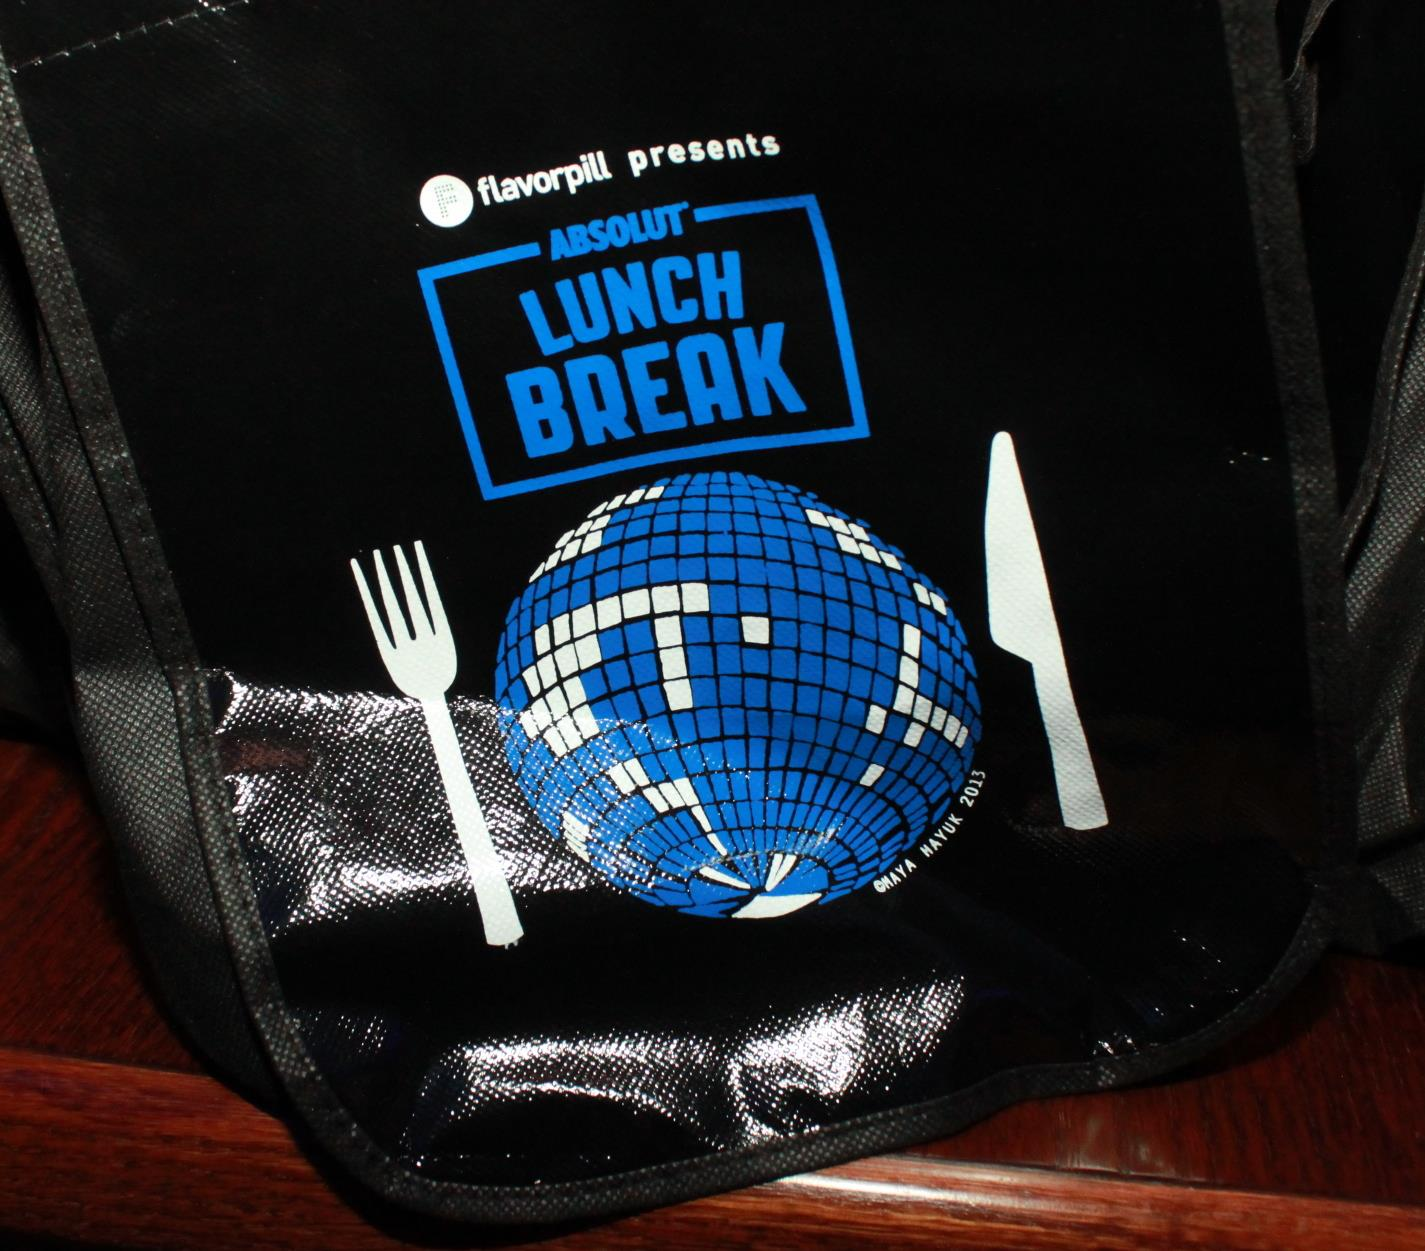 Producer and Co-Curator (with Questlove) for clients, Absolut and Flavorpill's Lunchbreak series Chicago. Free bagged lunches for all!